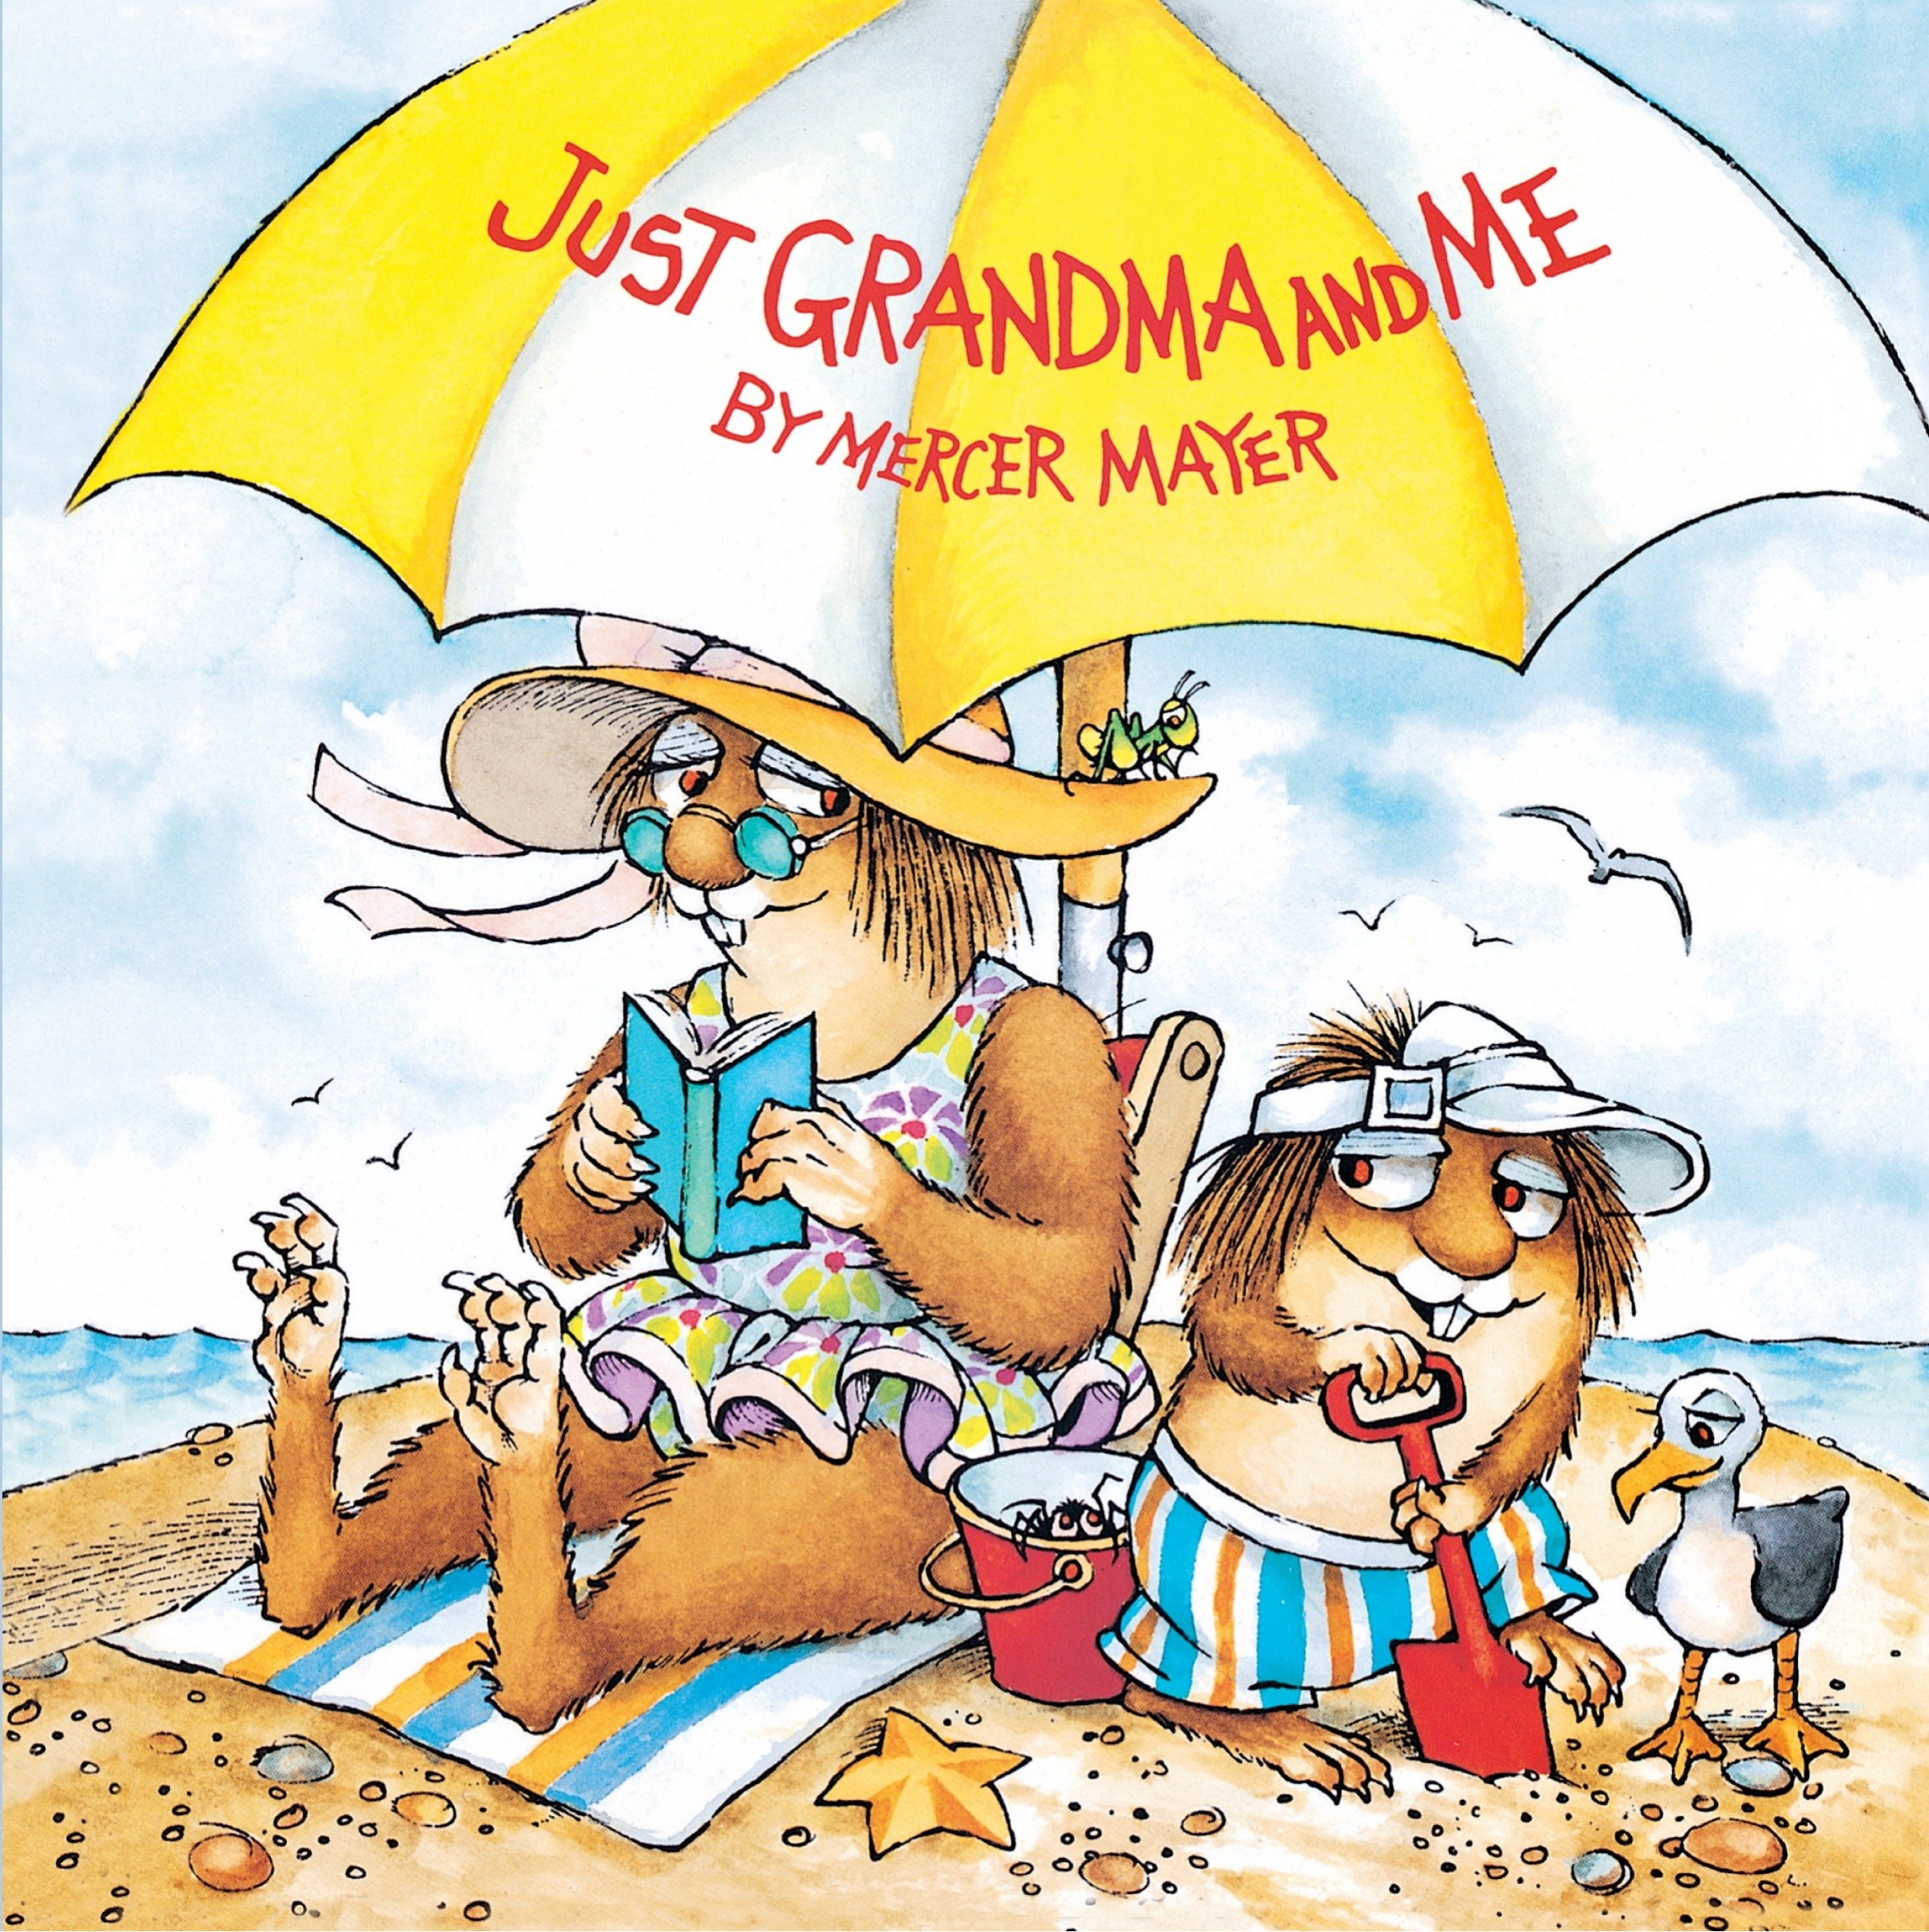 Book Just Grandma And Me (little Critter) by Mercer Mayer